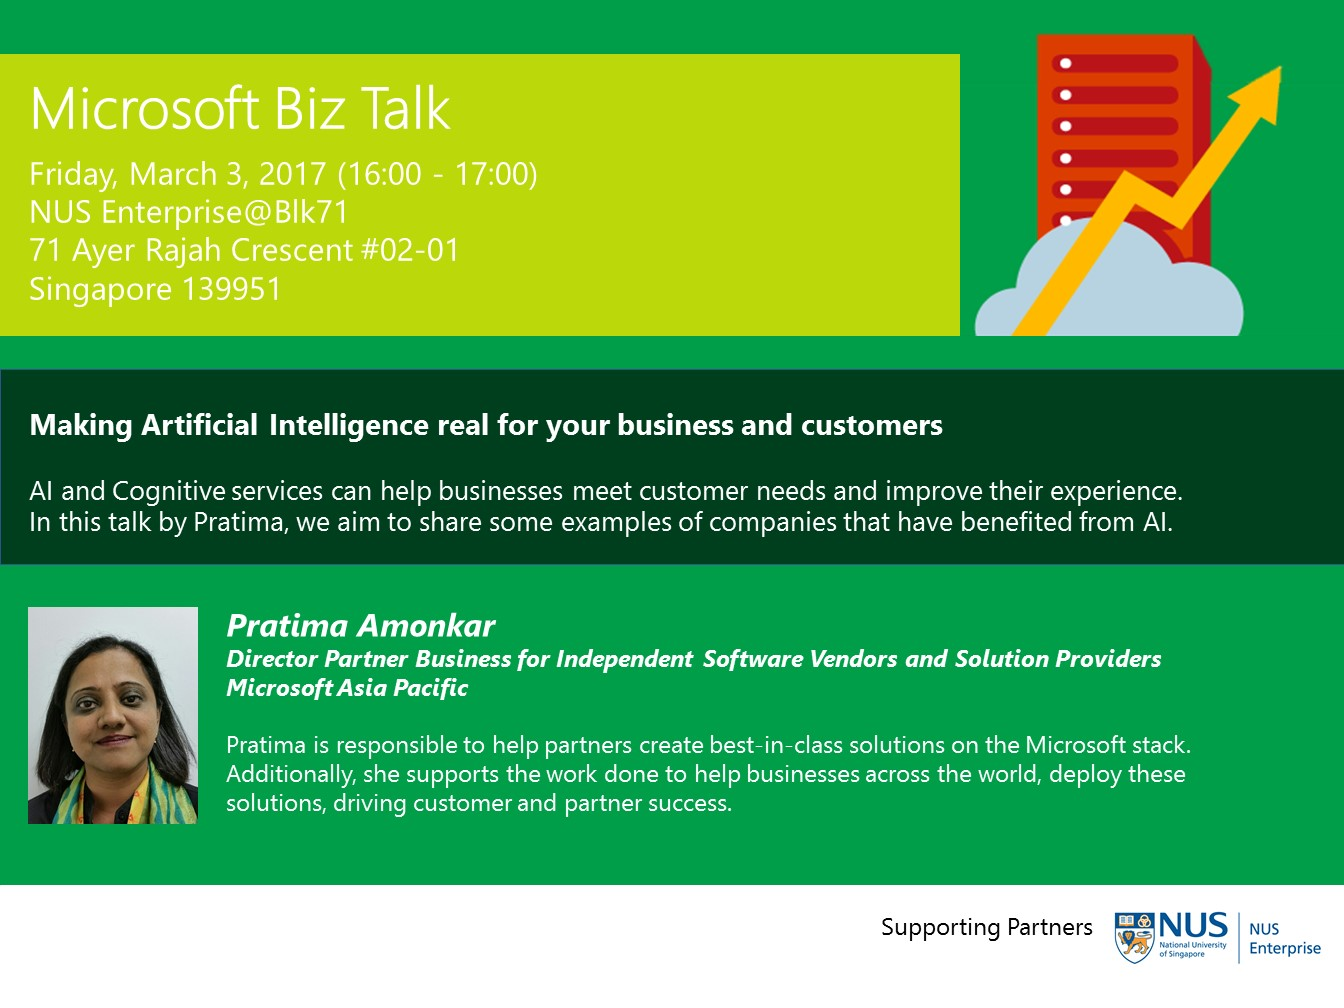 MICROSOFT BIZ TALK - MAKING ARTIFICIAL INTELLIGENCE REAL FOR YOUR BUSINESS AND CUSTOMERS